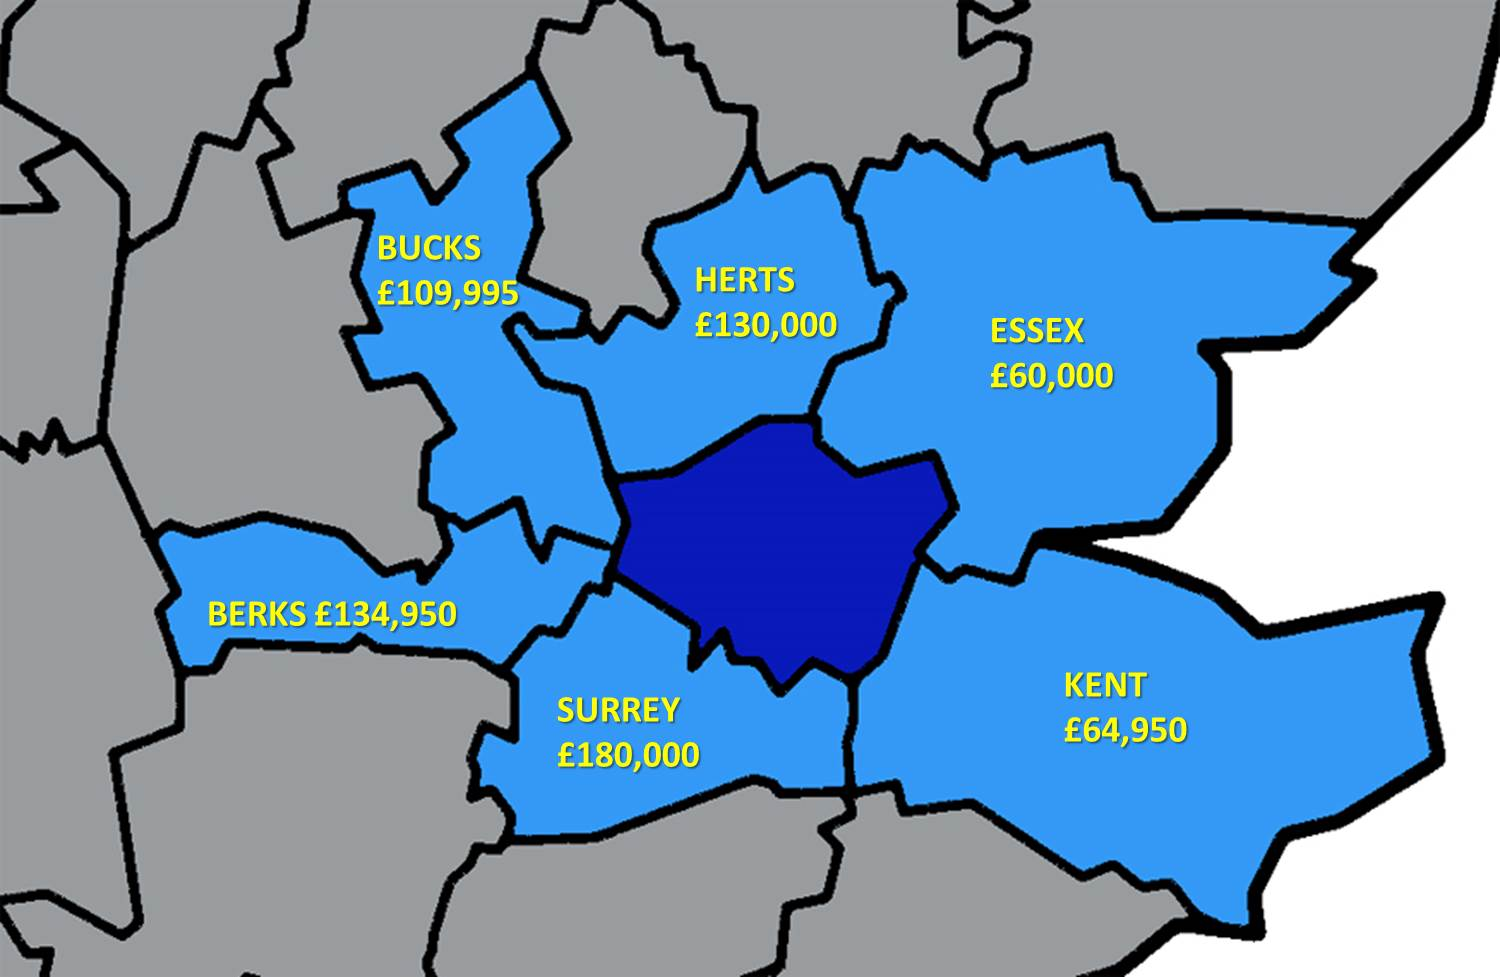 What is the average price of a three bedroom flat?